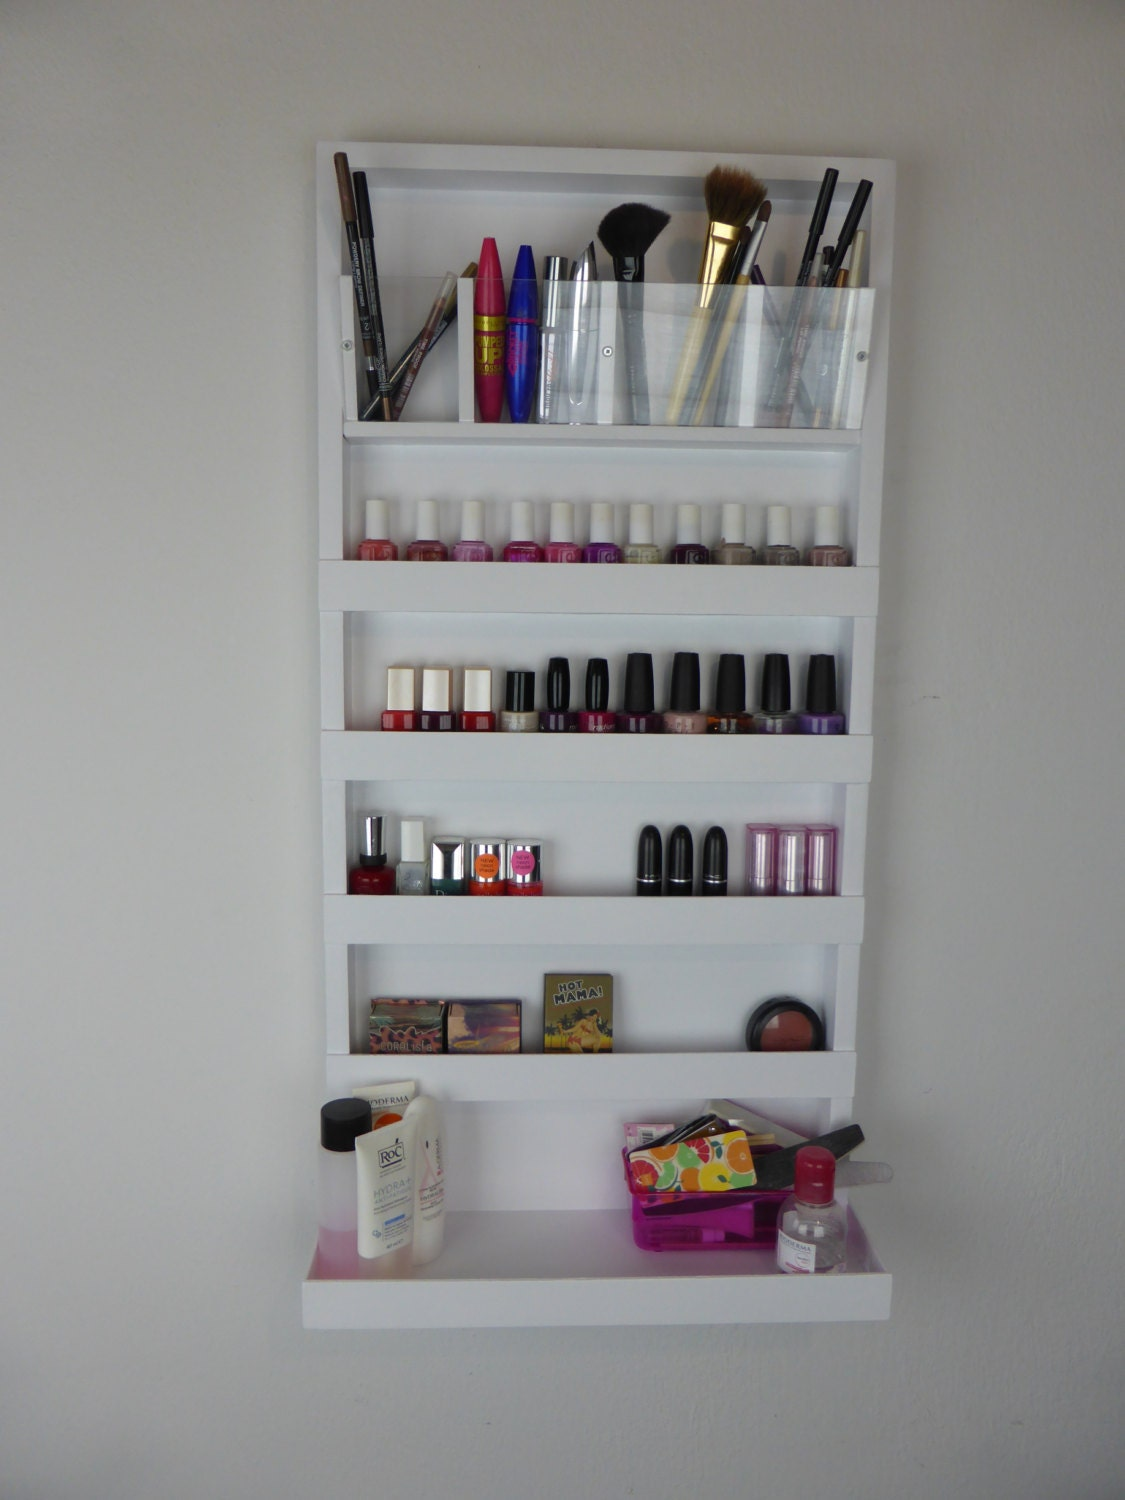 Ake up organizer nail polish rack bathroom storage - Meuble rangement maquillage ...